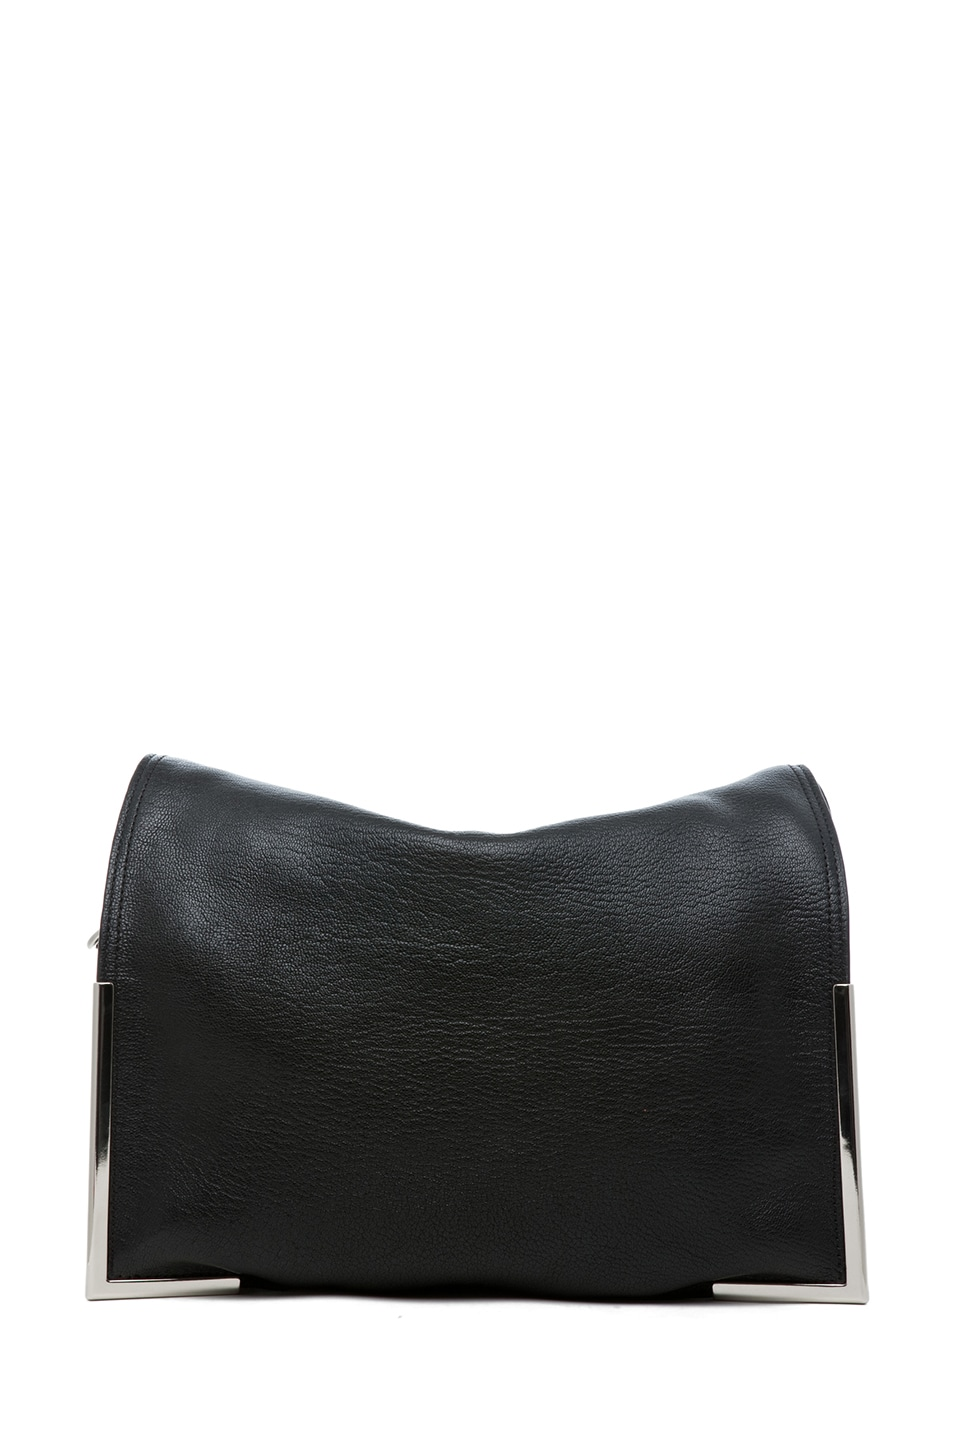 Image 2 of 3.1 phillip lim Lux Grain Convertible Cut Out Handle Tote in Black